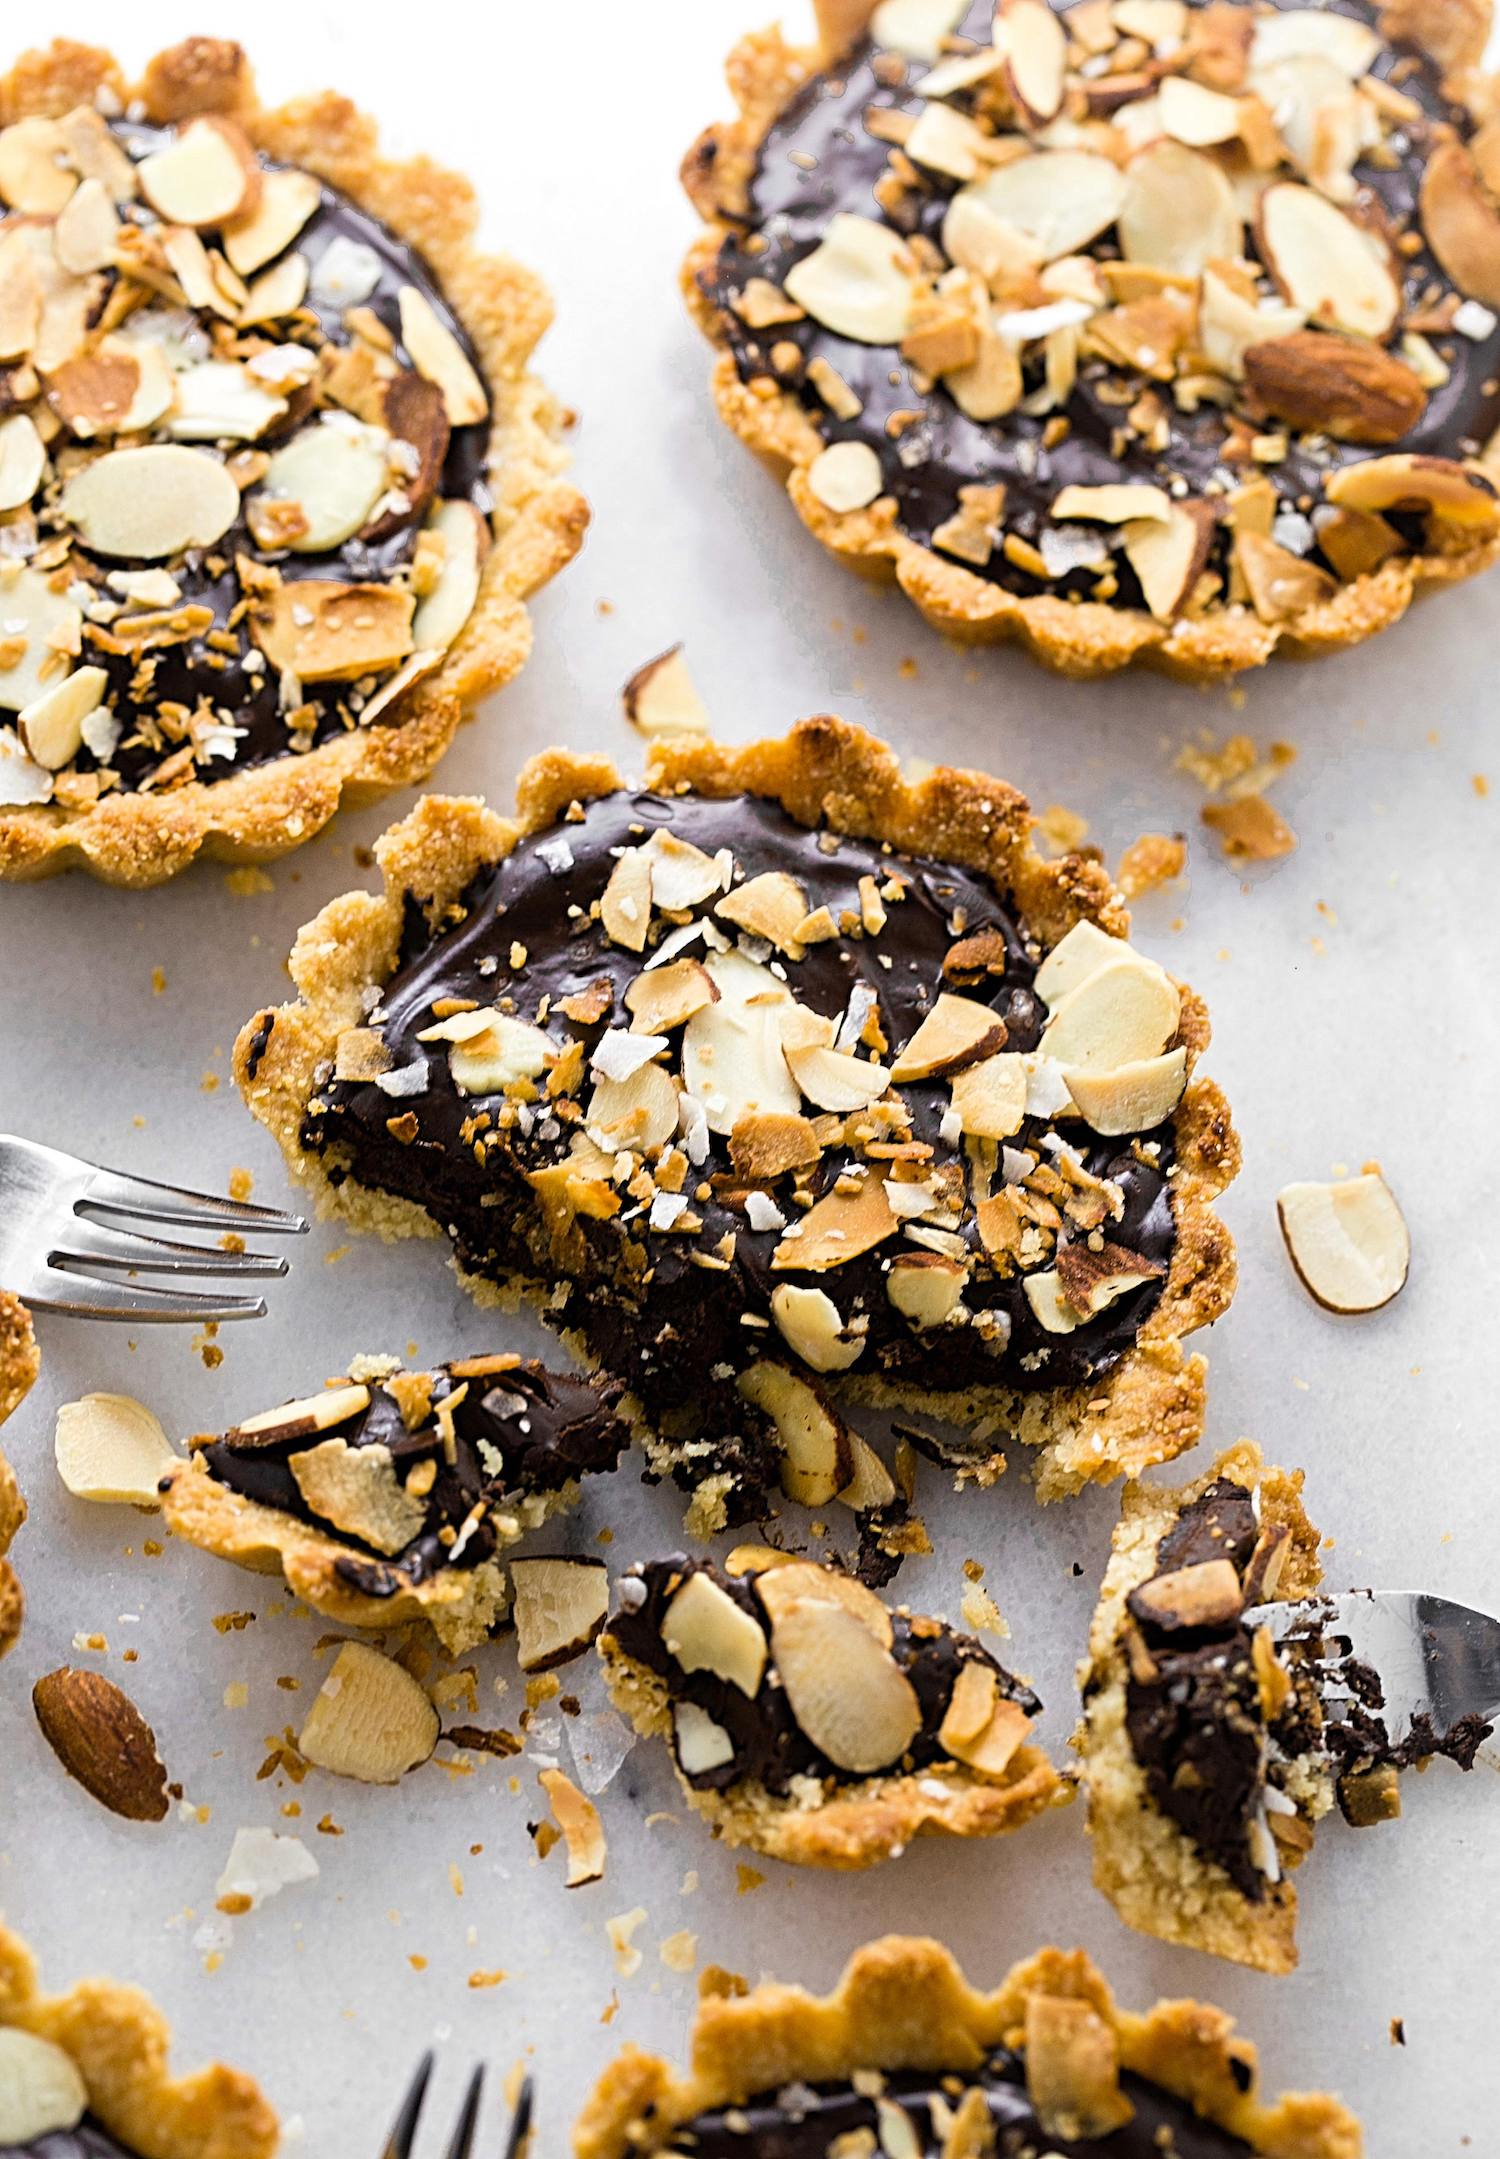 All the Passover Friendly Desserts from the Blog | TrufflesandTrends.com